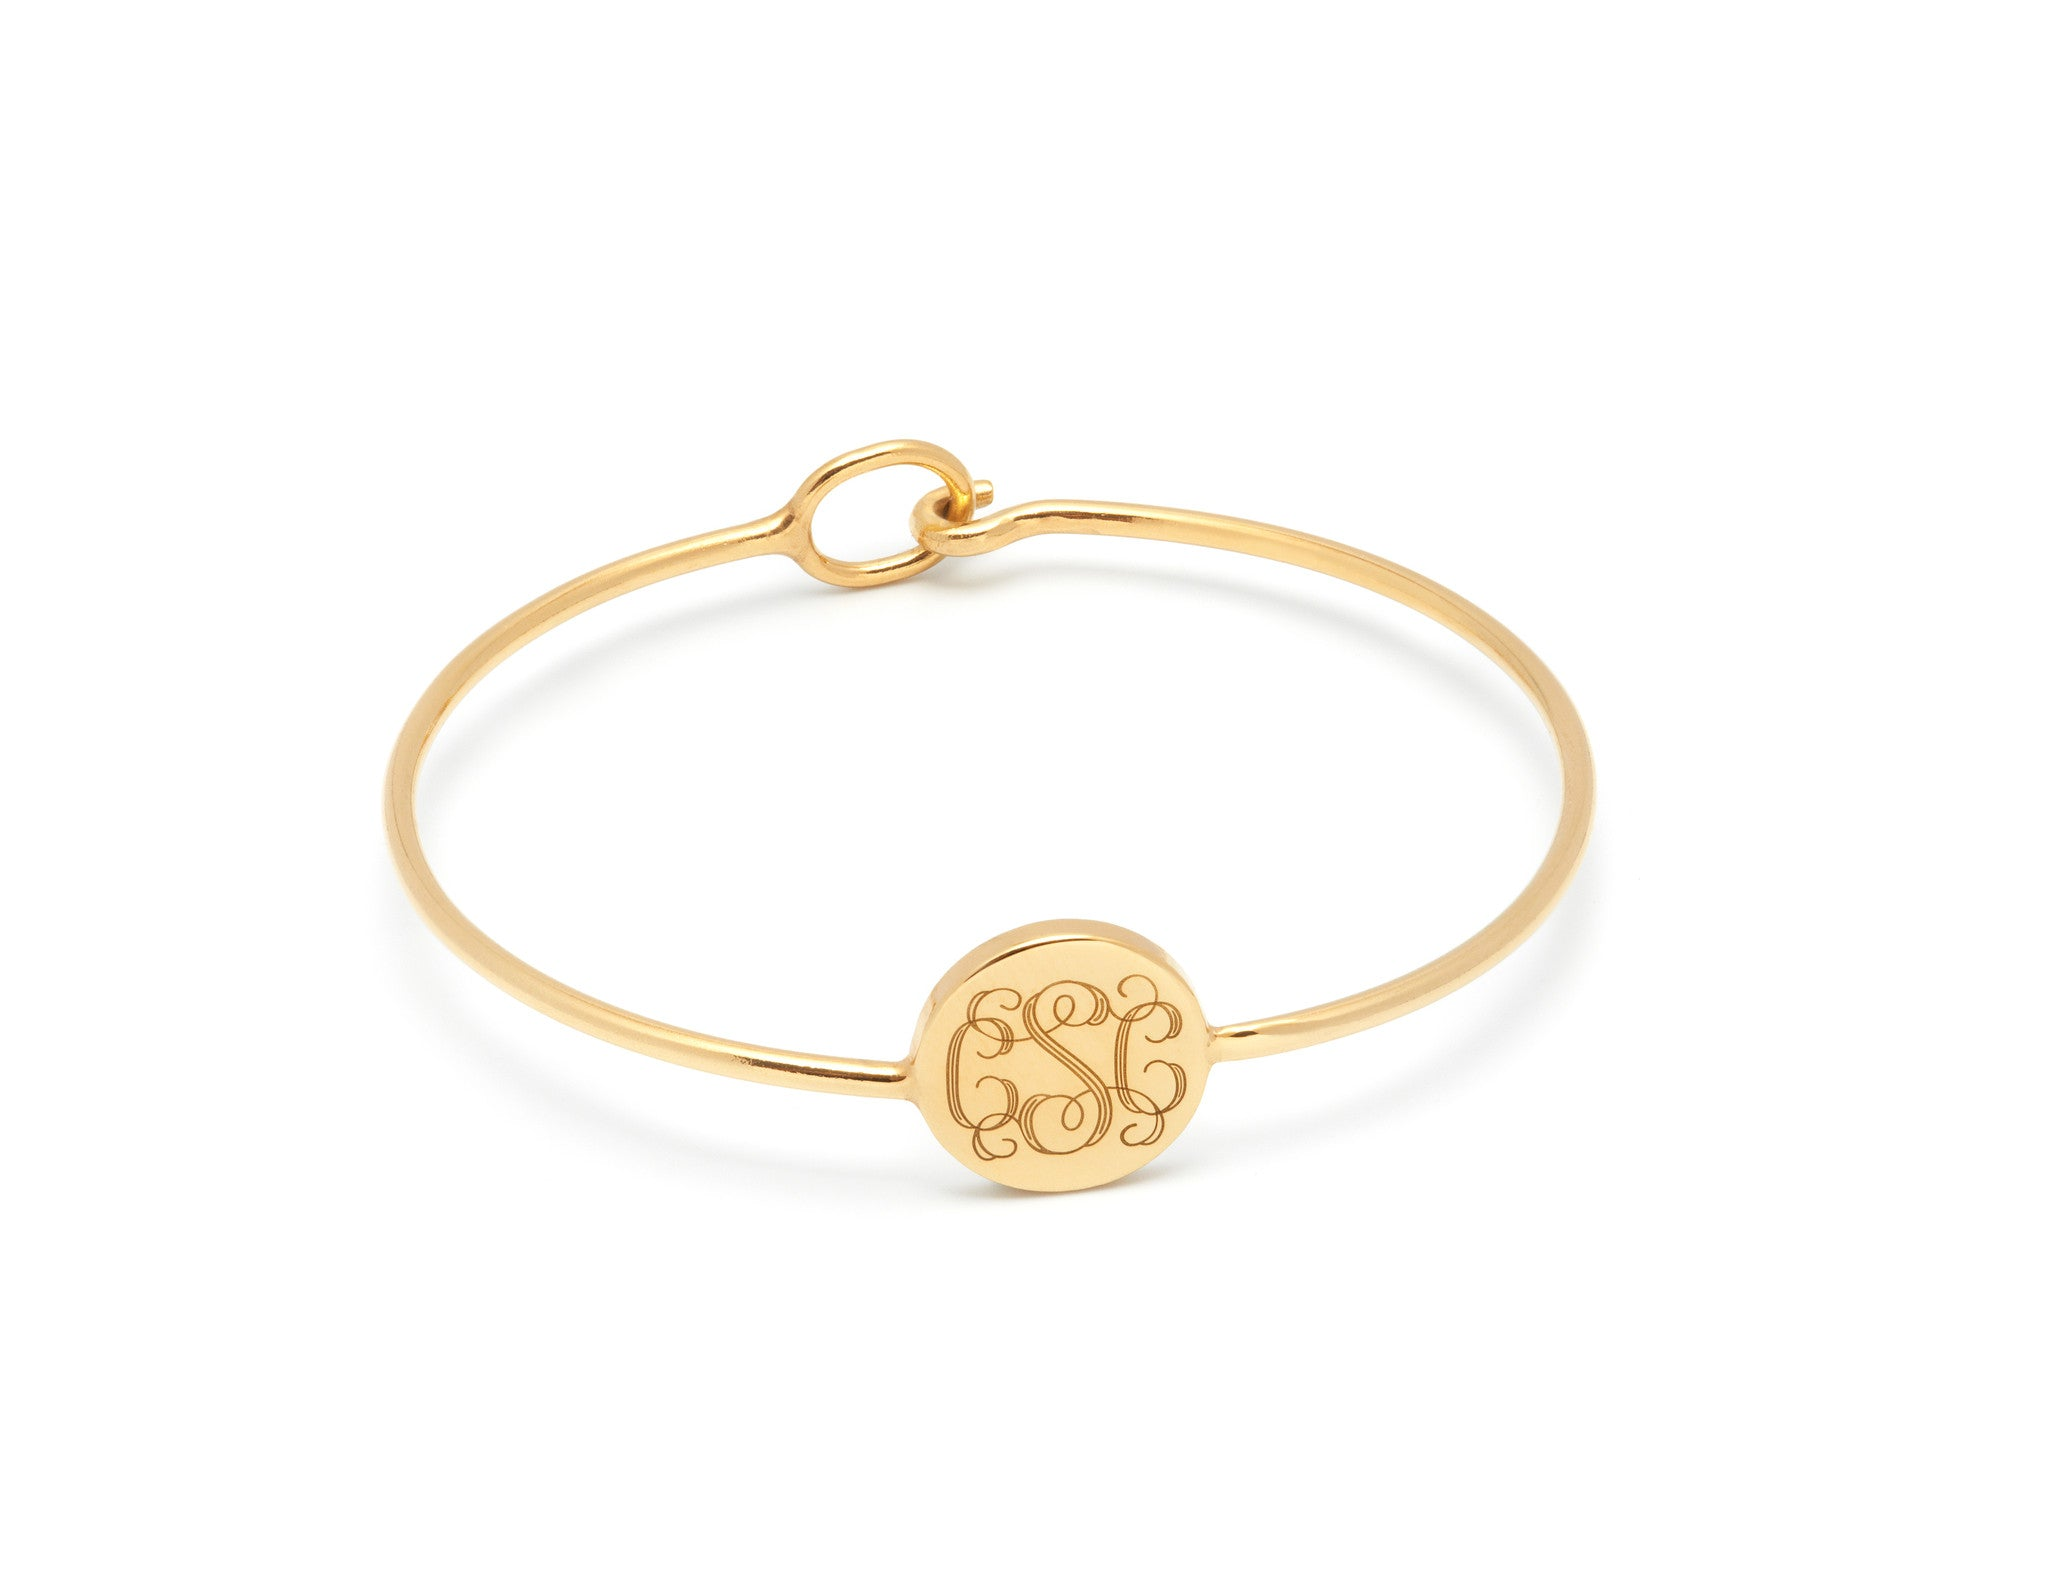 Monogram personalised bangle